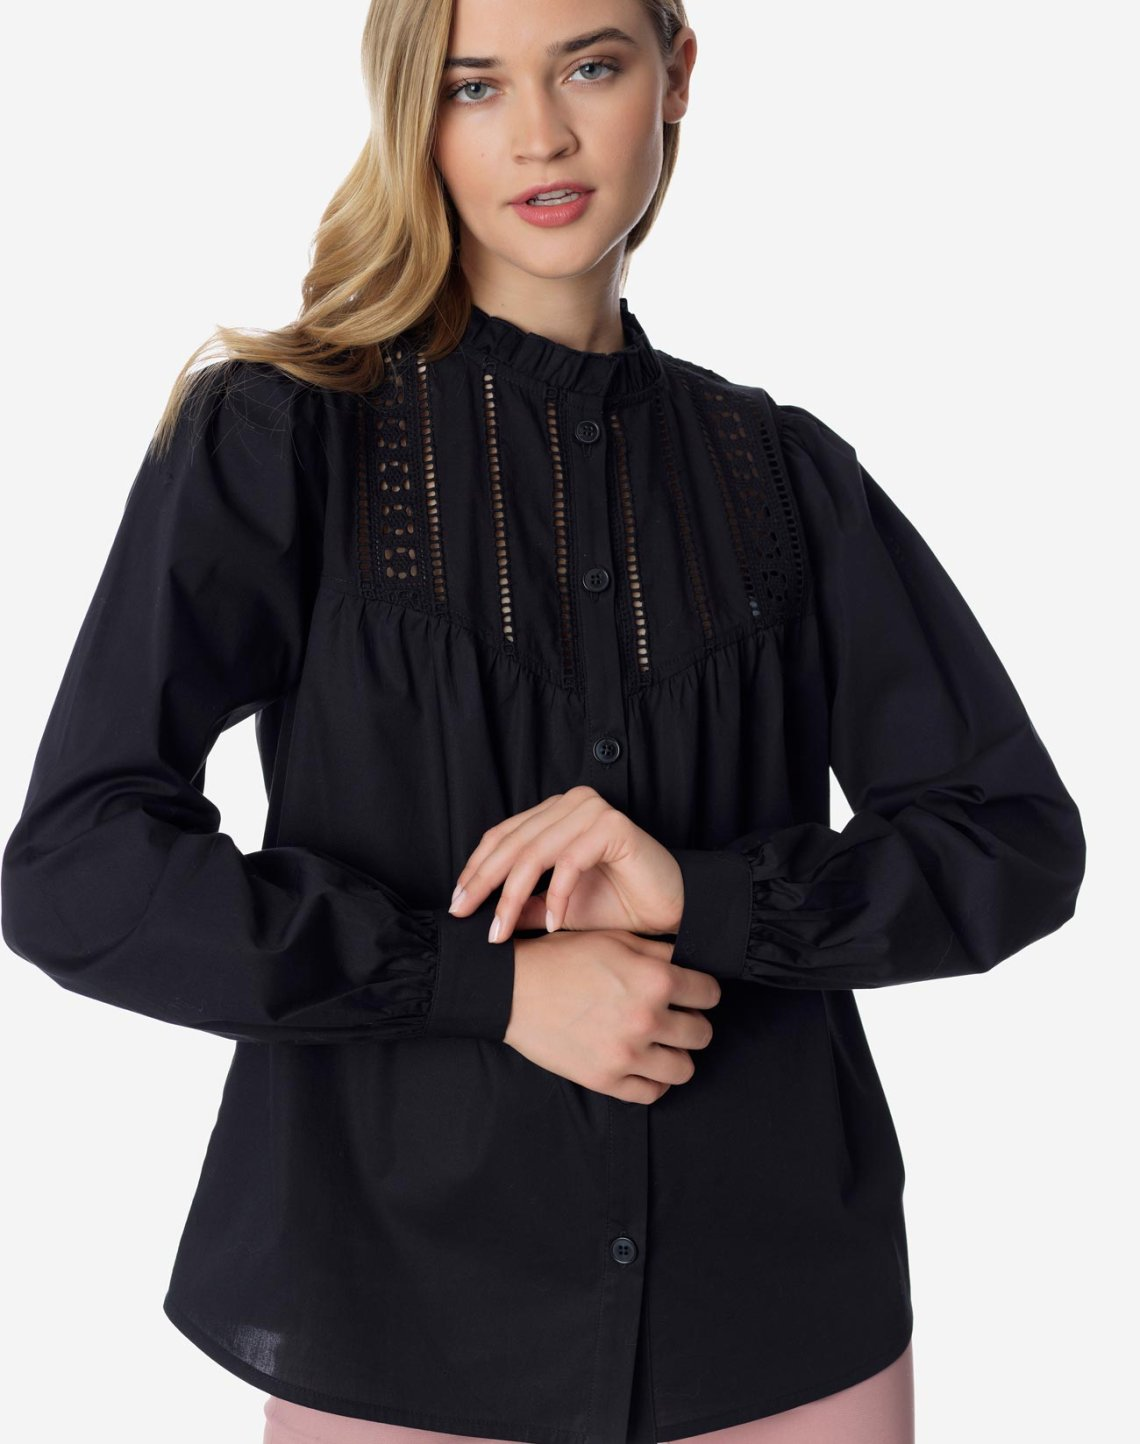 Shirt with detail broderie